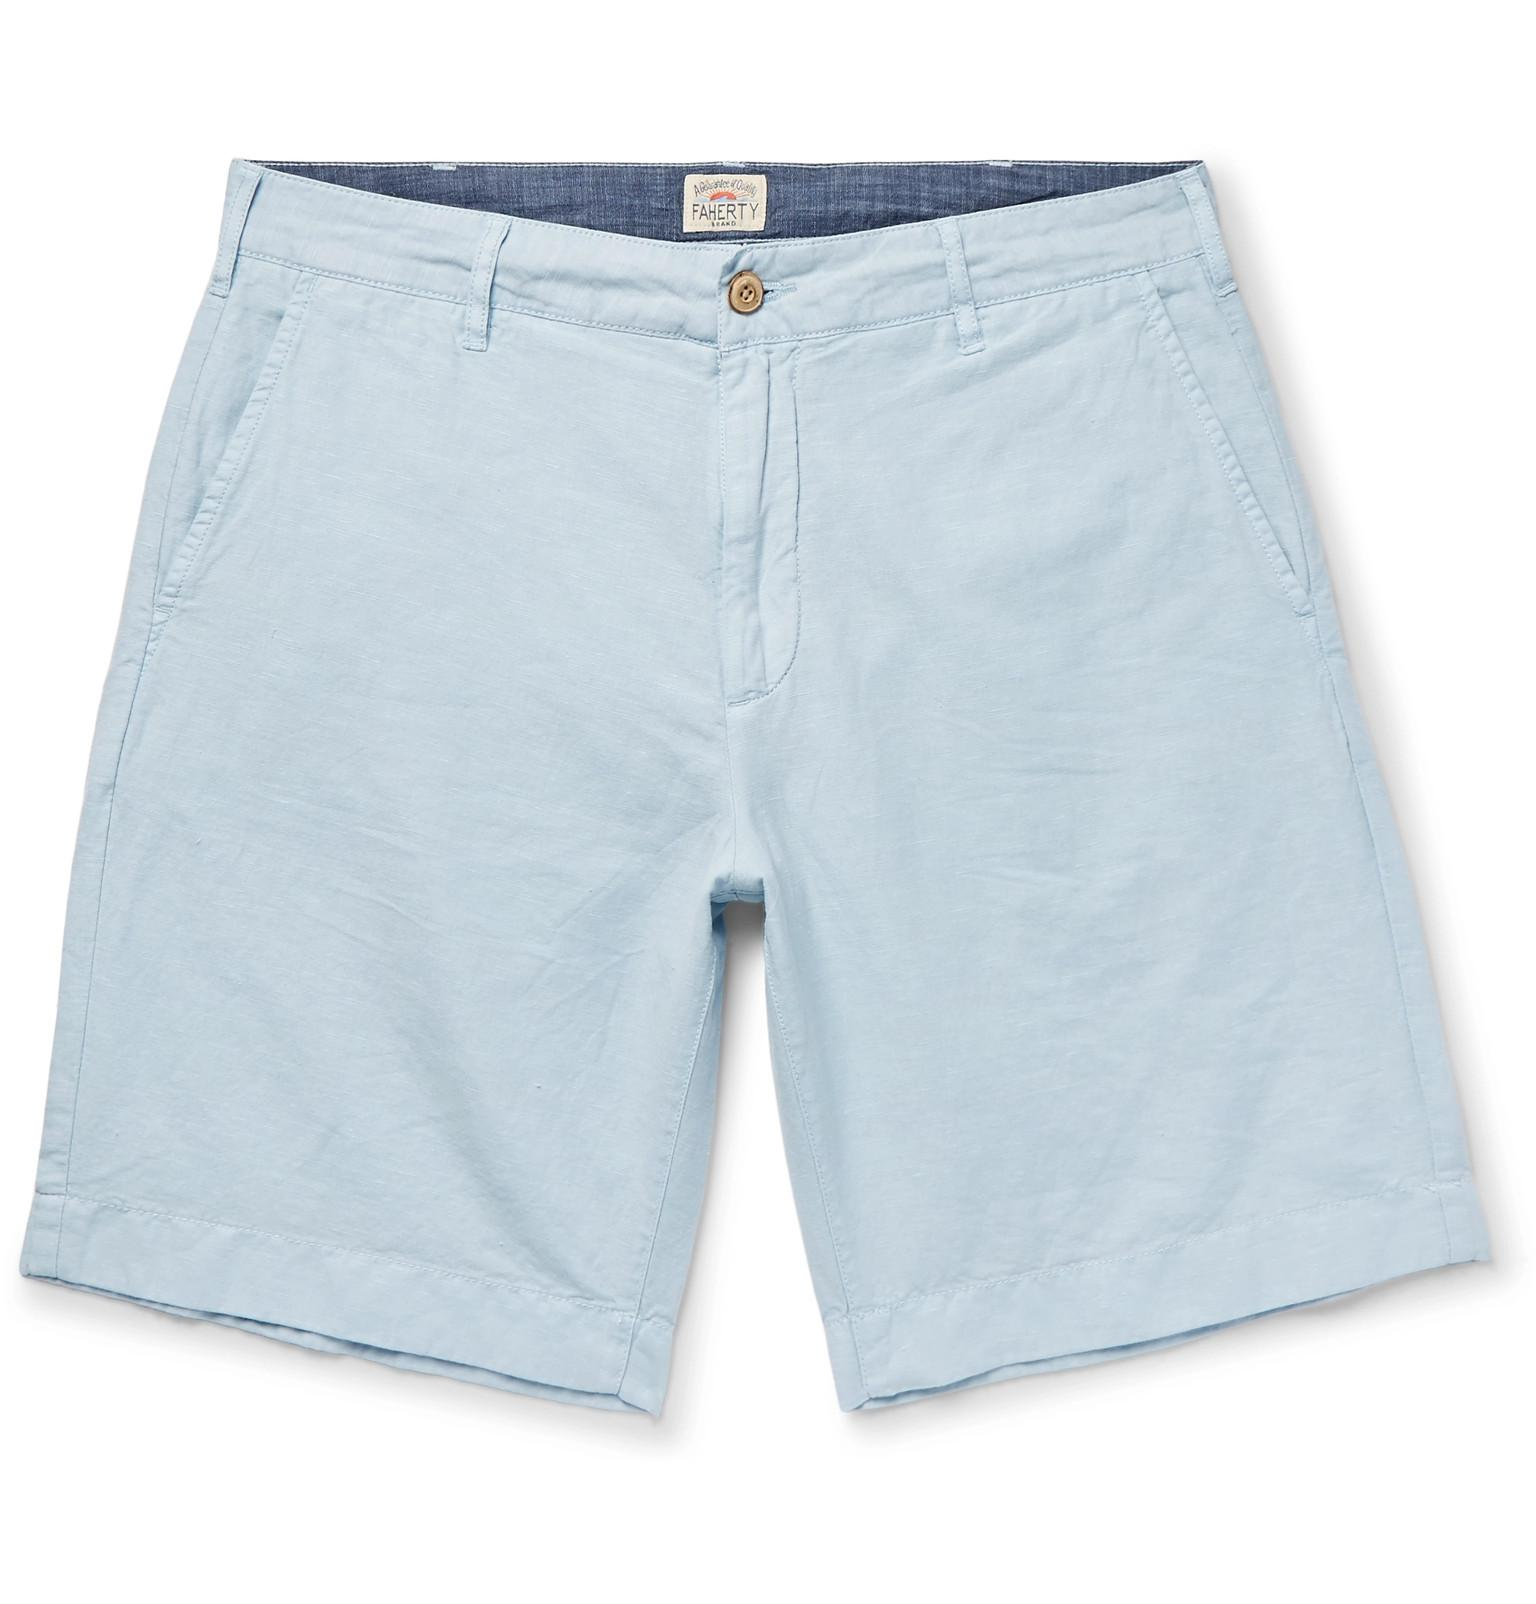 Faherty Malibu Linen And Cotton-blend Shorts - Light blue